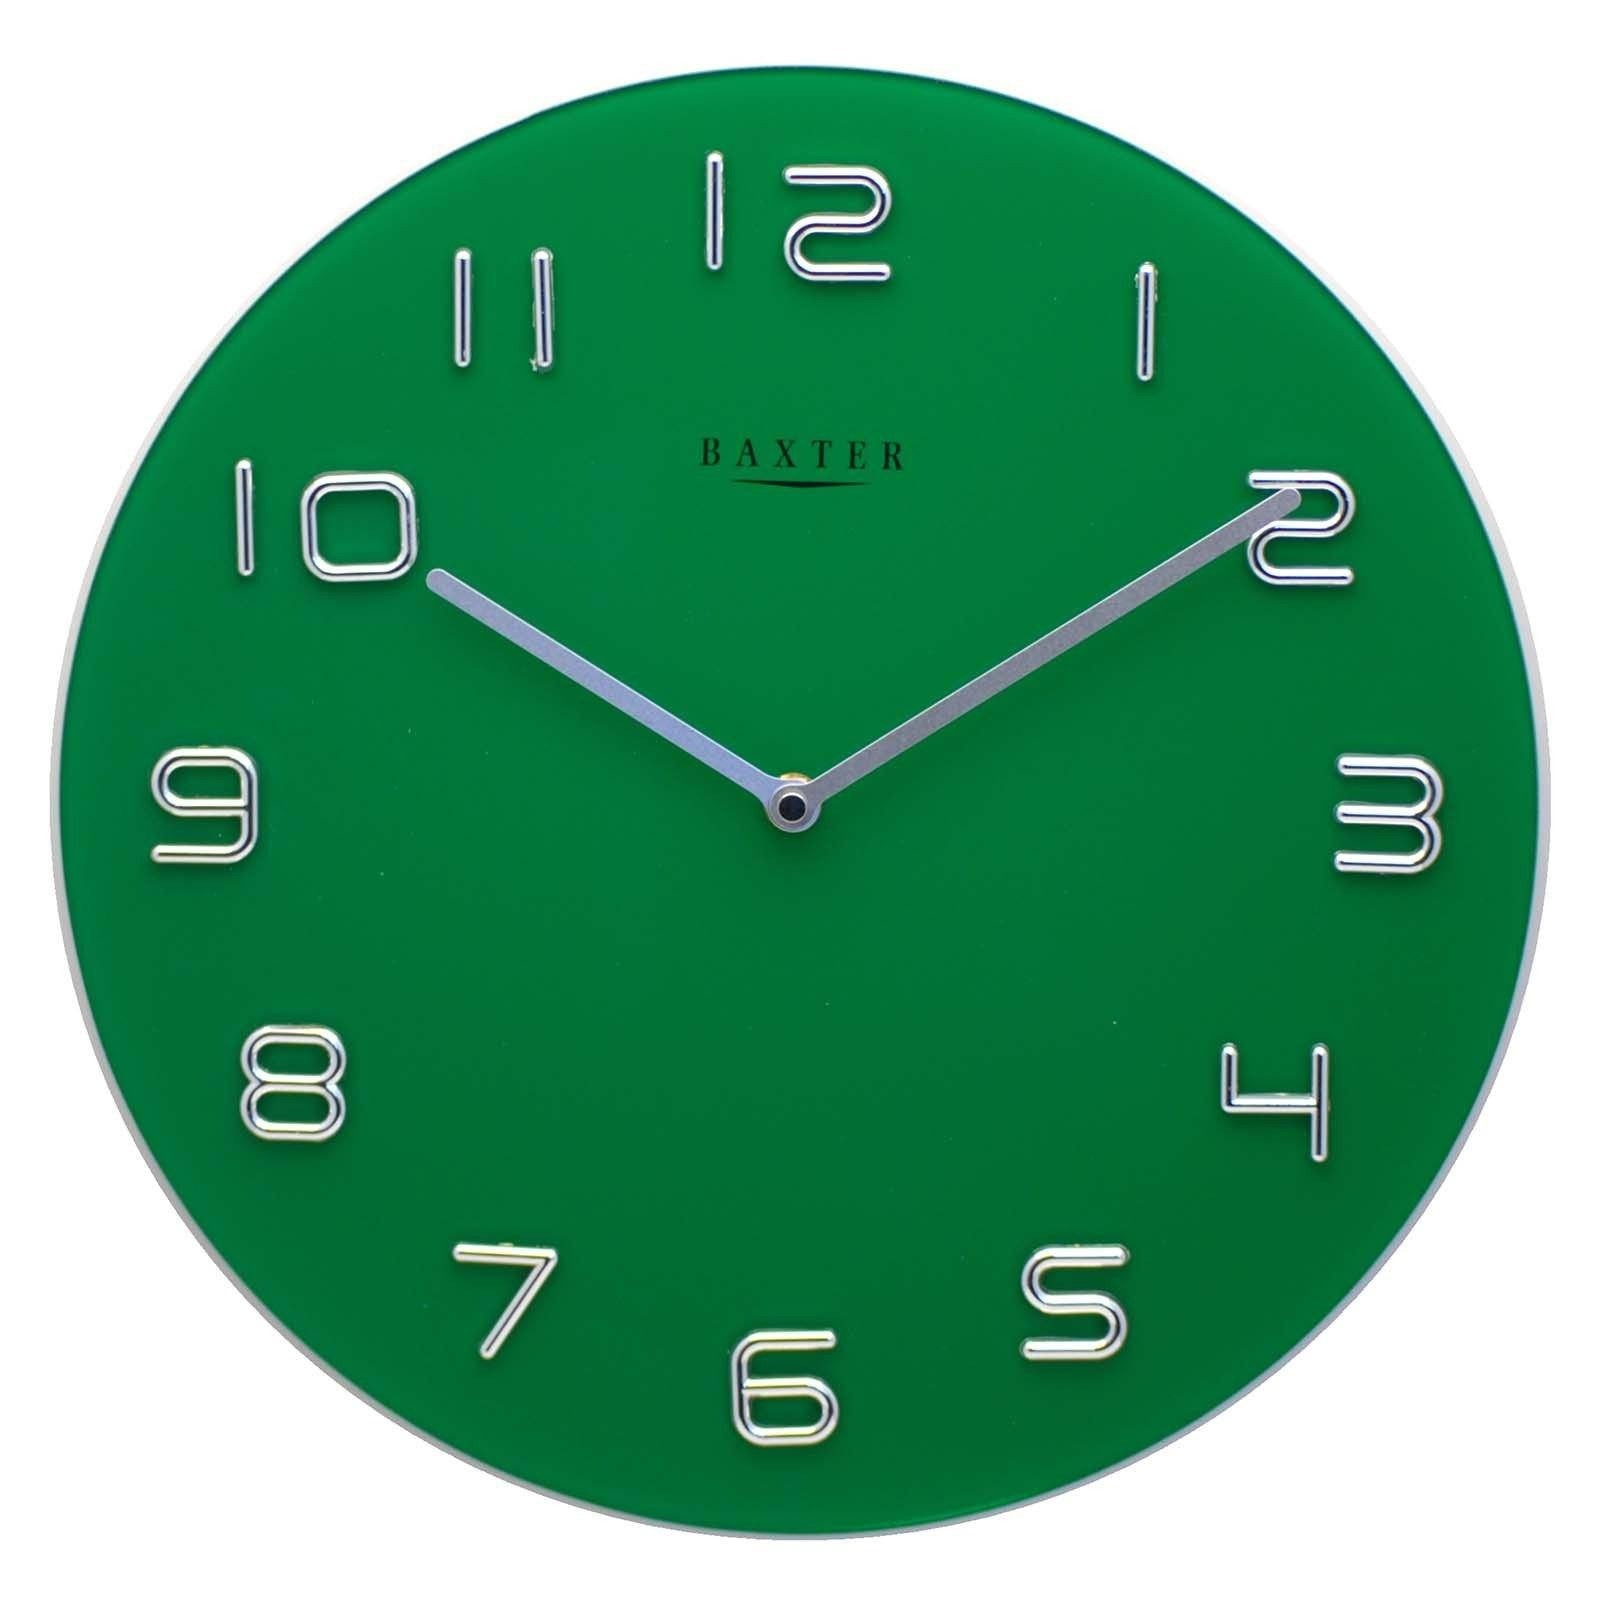 Baxter Round Glass Wall Clock Green 35cm PW7007GRN